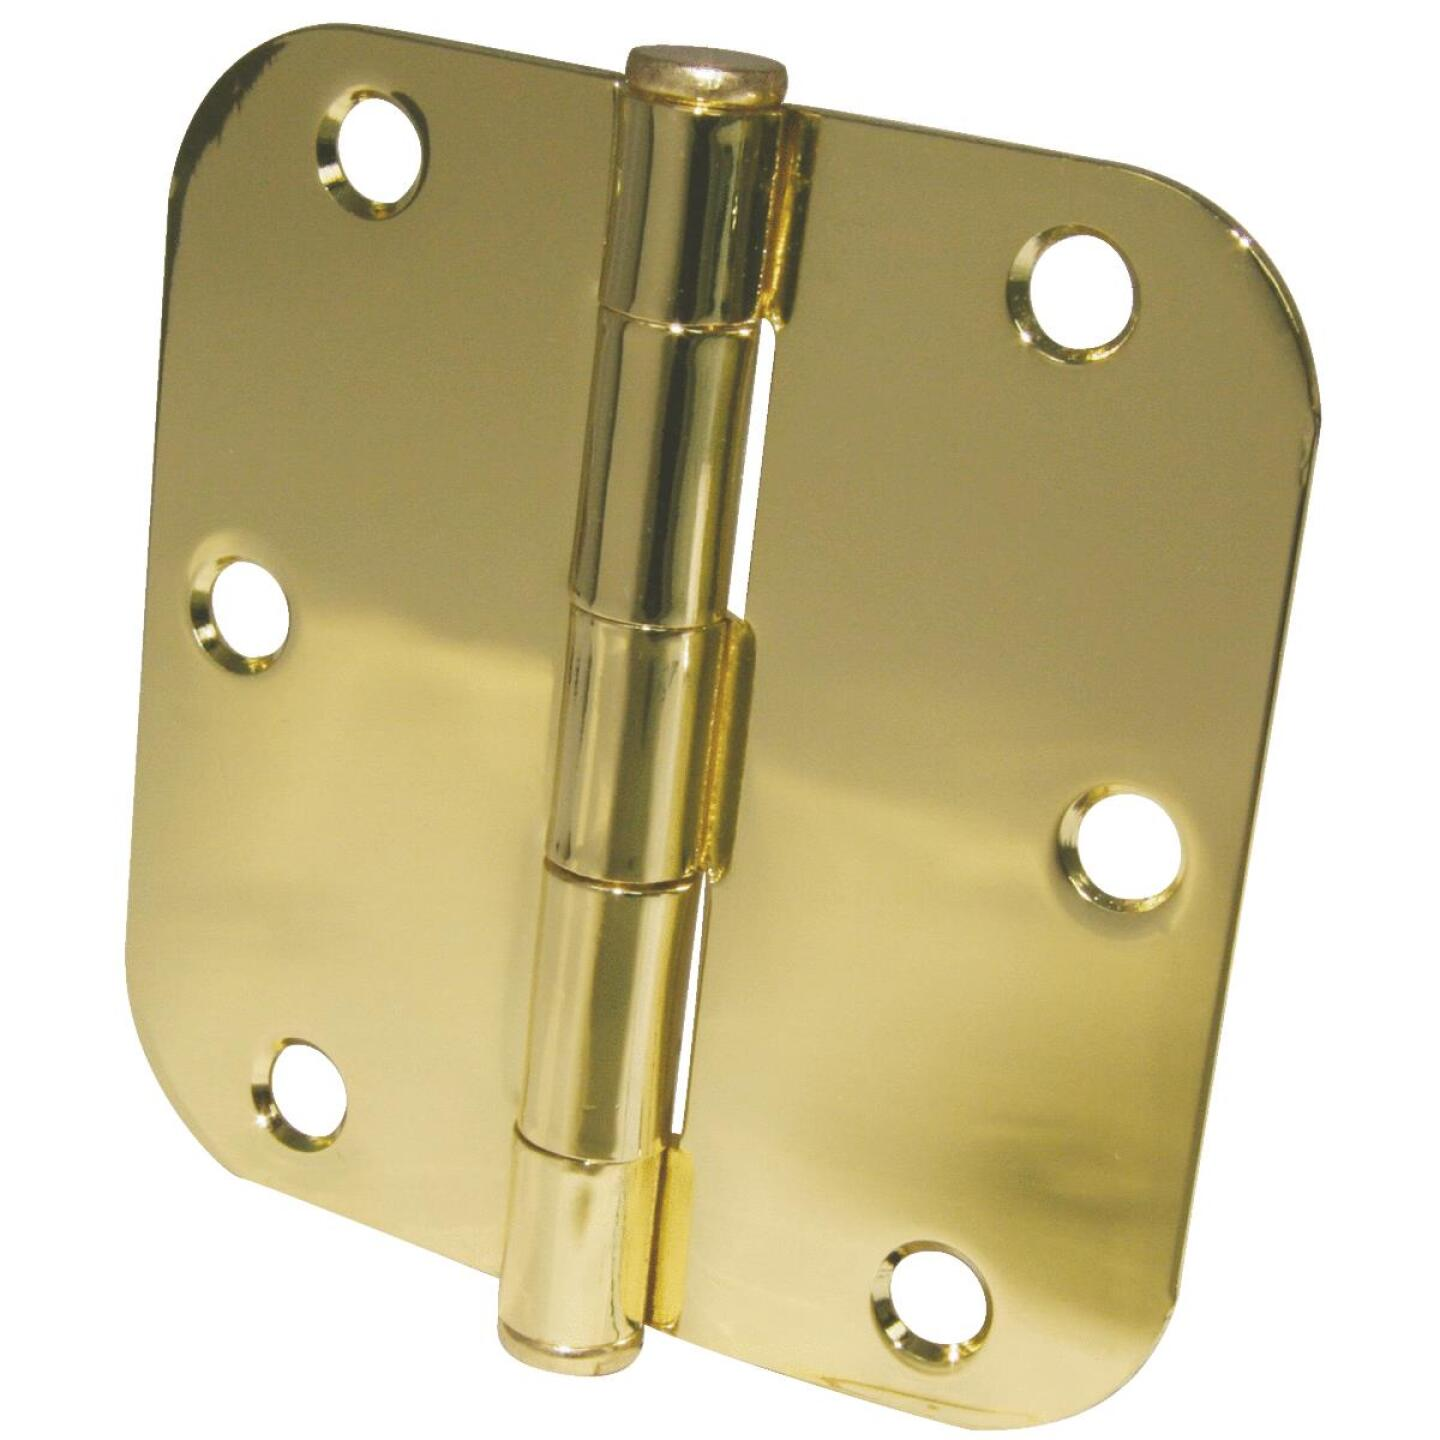 Ultra Hardware 3-1/2 In. x 5/8 In. Radius Polished Brass Door Hinge (3-Pack) Image 1